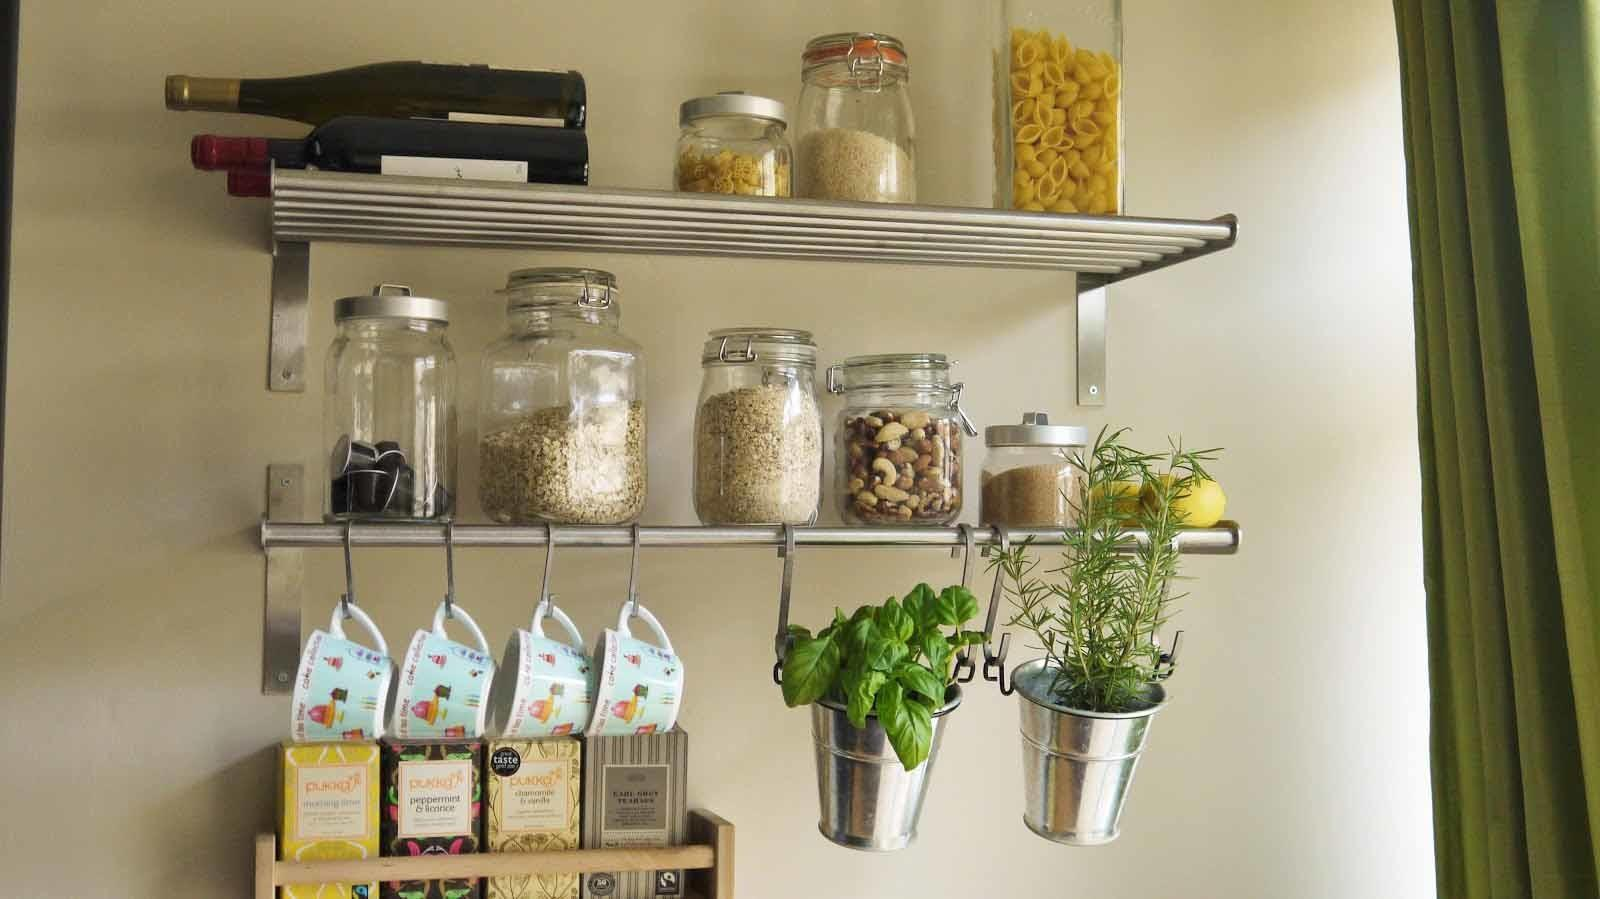 Stainless Steel Kitchen Shelving Units Narrow